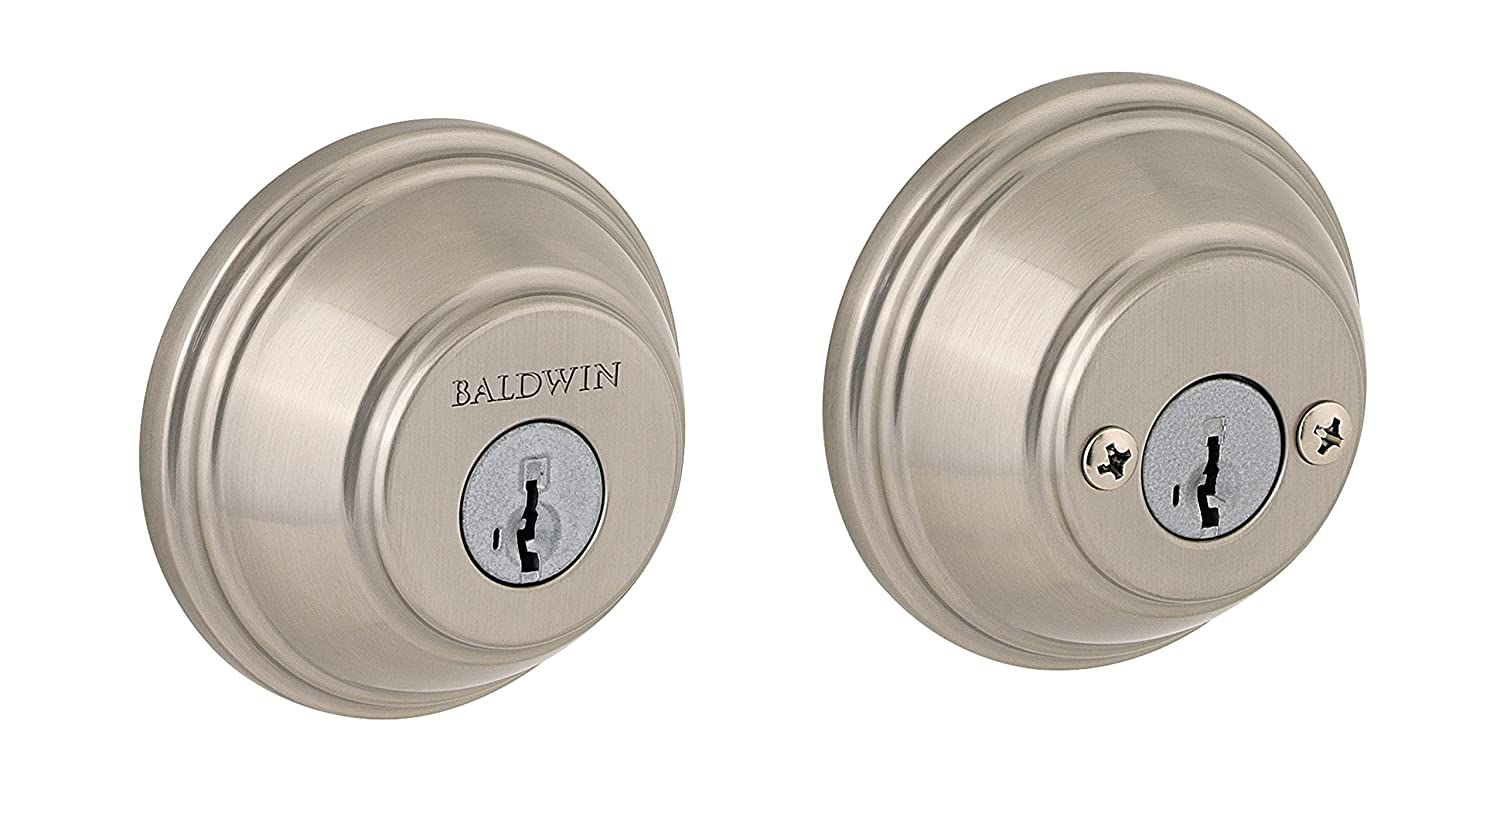 Baldwin Prestige 385 Round Double Cylinder Deadbolt Featuring SmartKey in Satin Nickel